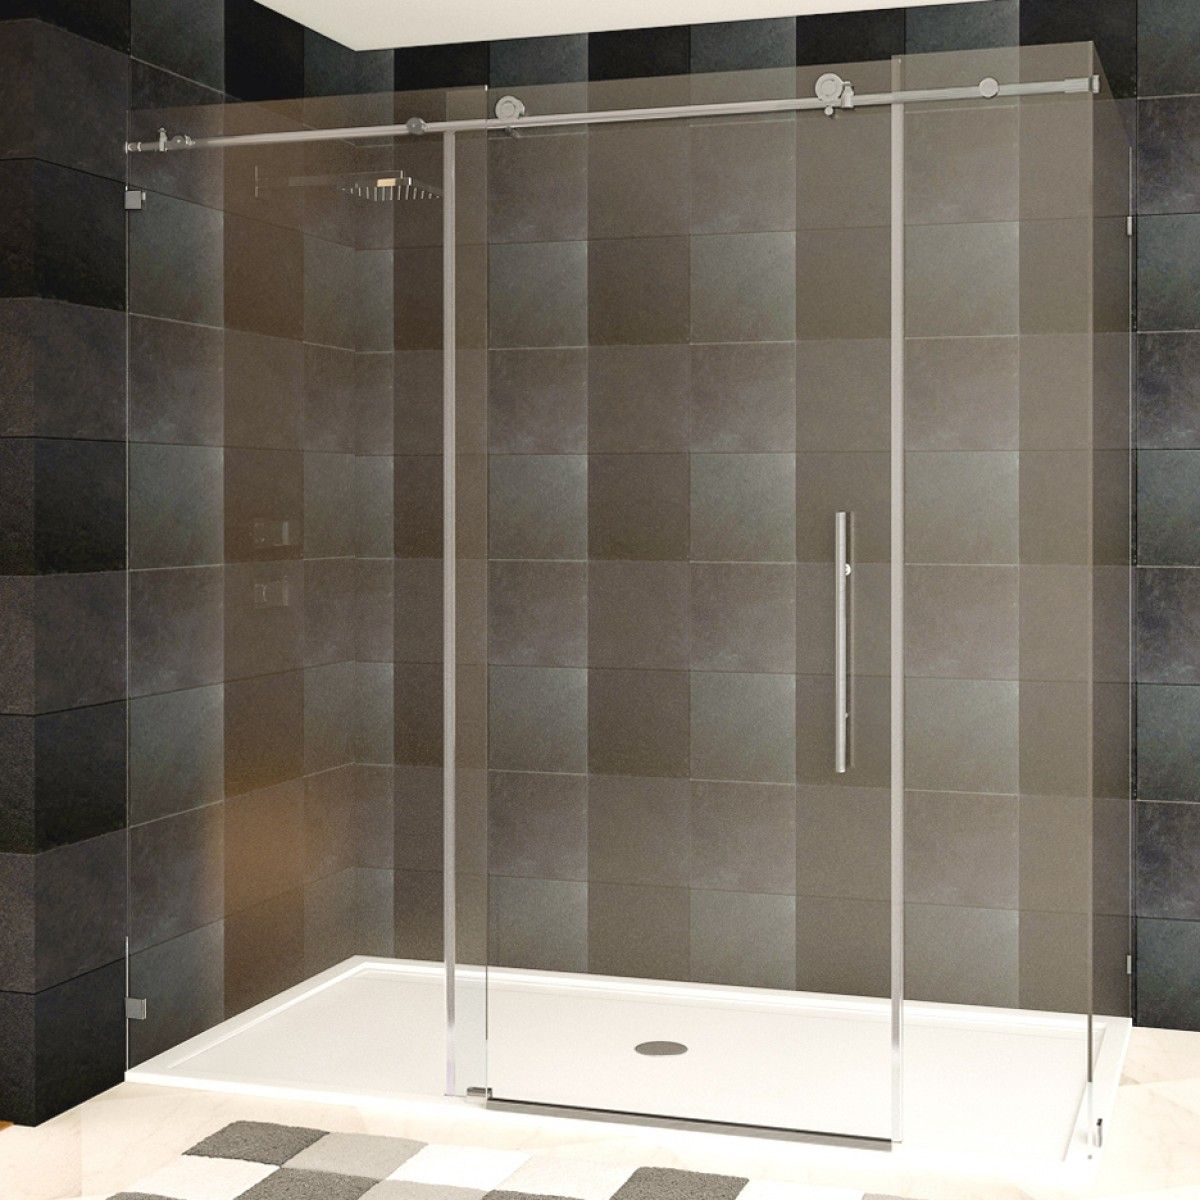 Ultra C 72 x 76 x 345 Shower